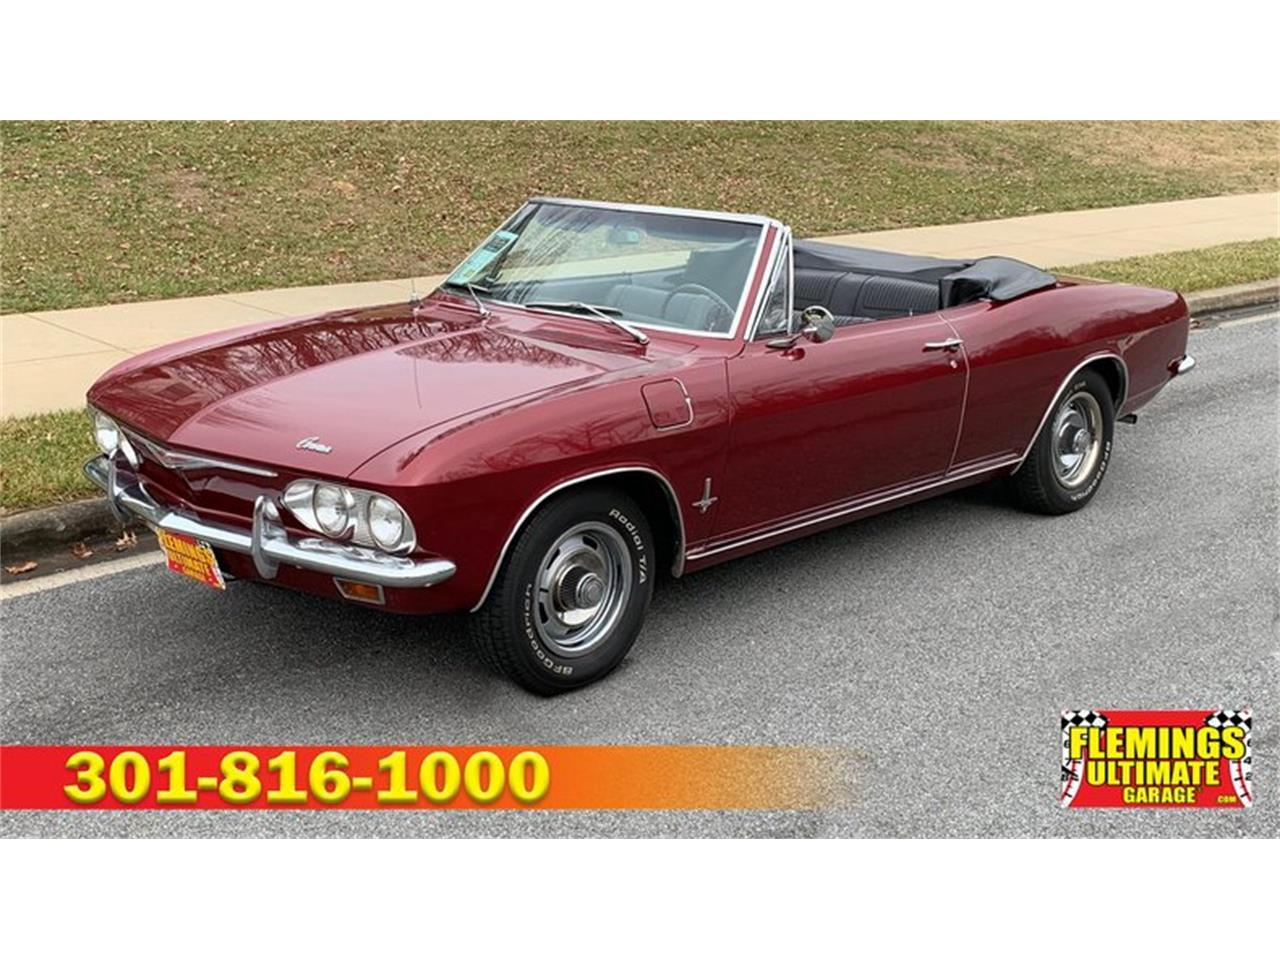 Large Picture of Classic '65 Chevrolet Corvair located in Maryland Offered by Flemings Ultimate Garage - PF6P